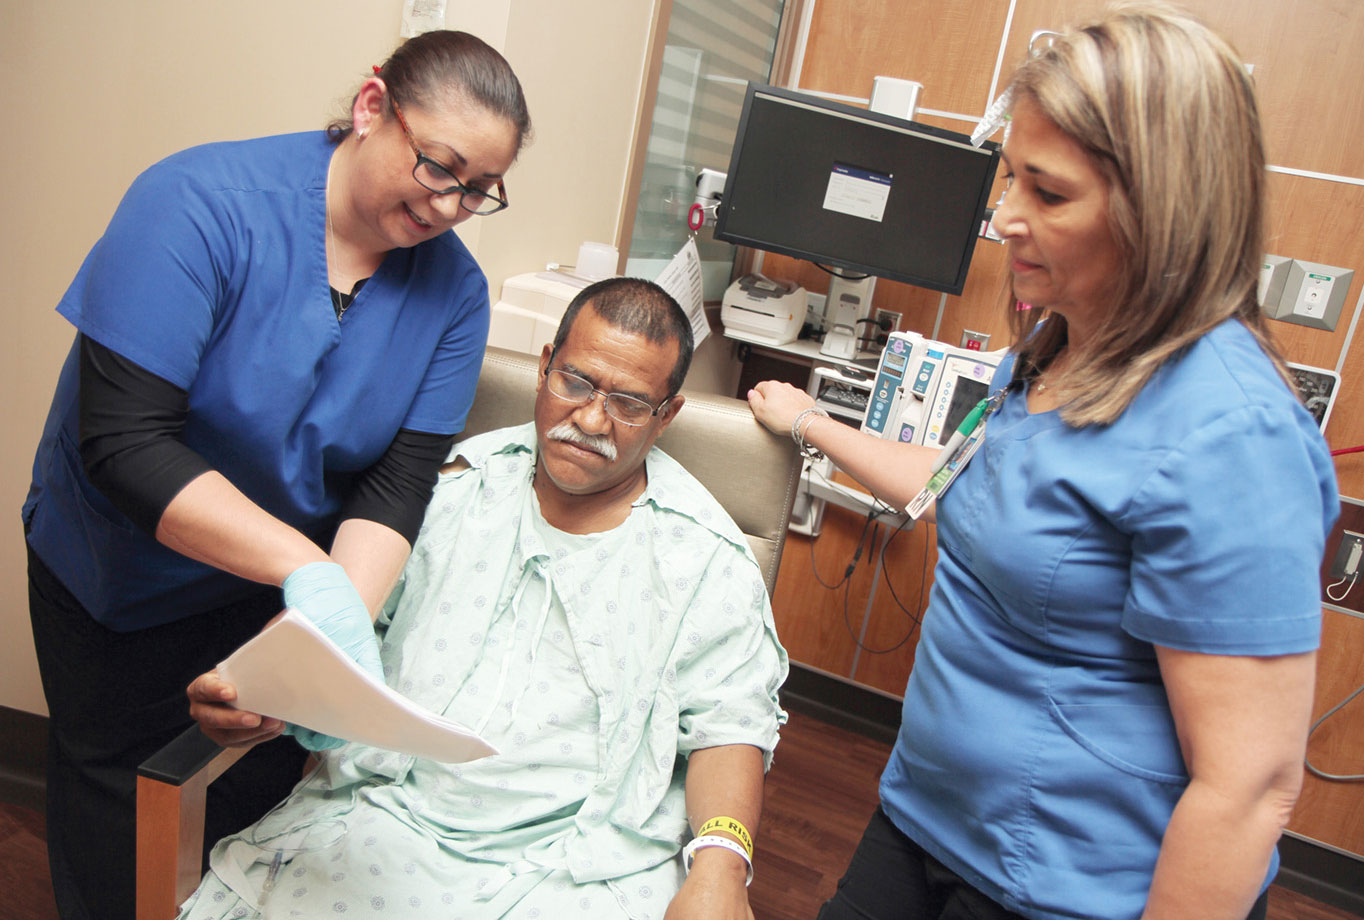 A patient receives attention at Parkland Memorial Hospital in Dallas.